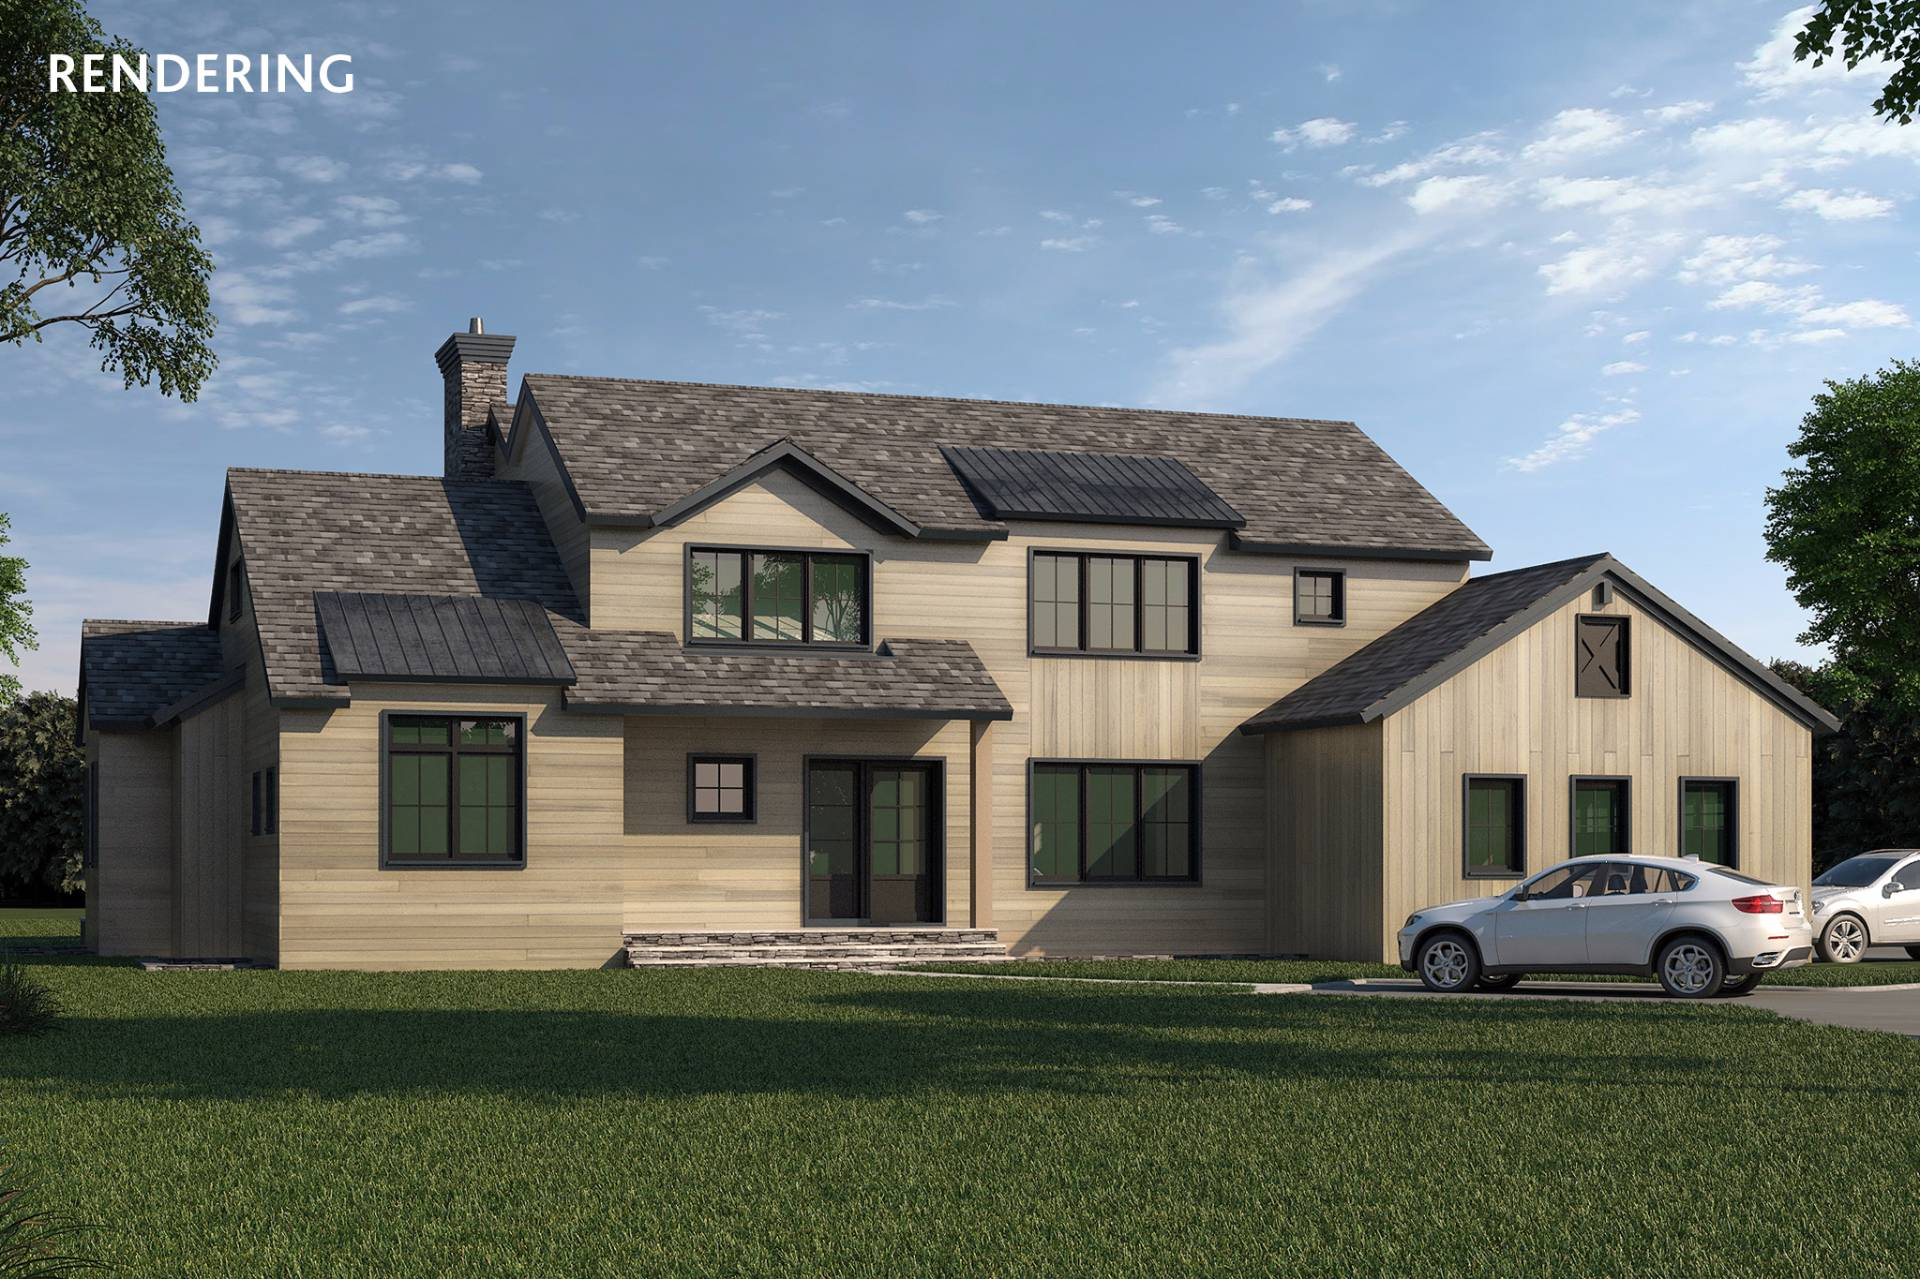 Single Family Home for Sale at New Construction On 4+/- Acres In Sagaponack Sagaponack, New York